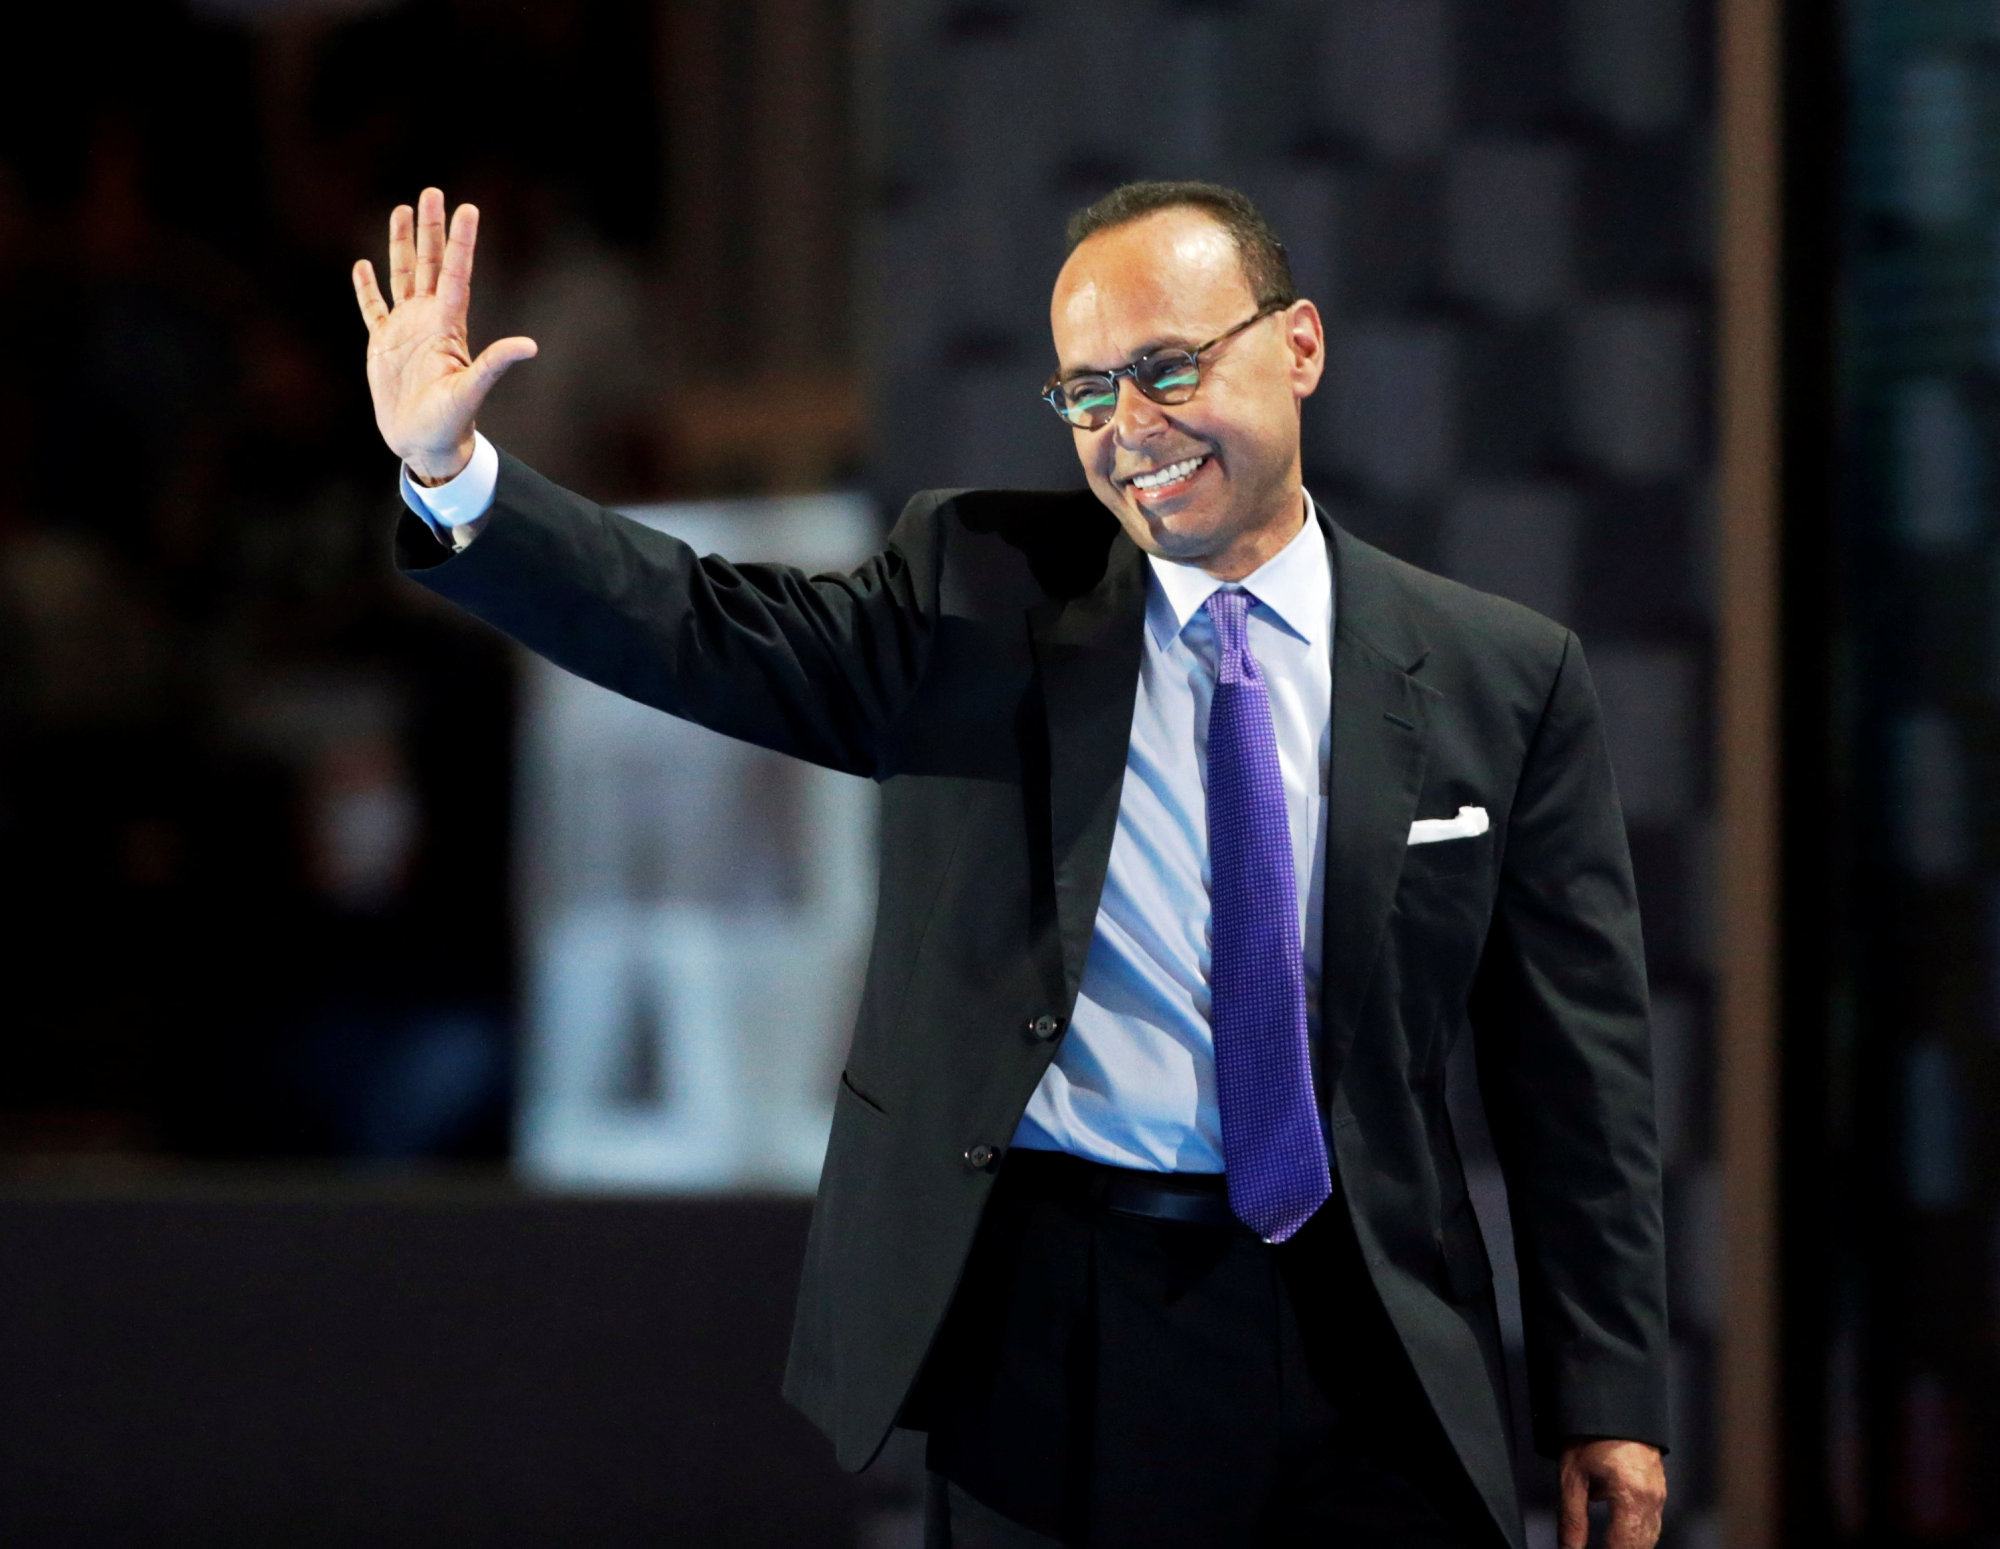 U.S. Rep. Luis Gutierrez (D-IL) waves after speaking at the Democratic National Convention in Philadelphia in 2016.   REUTERS